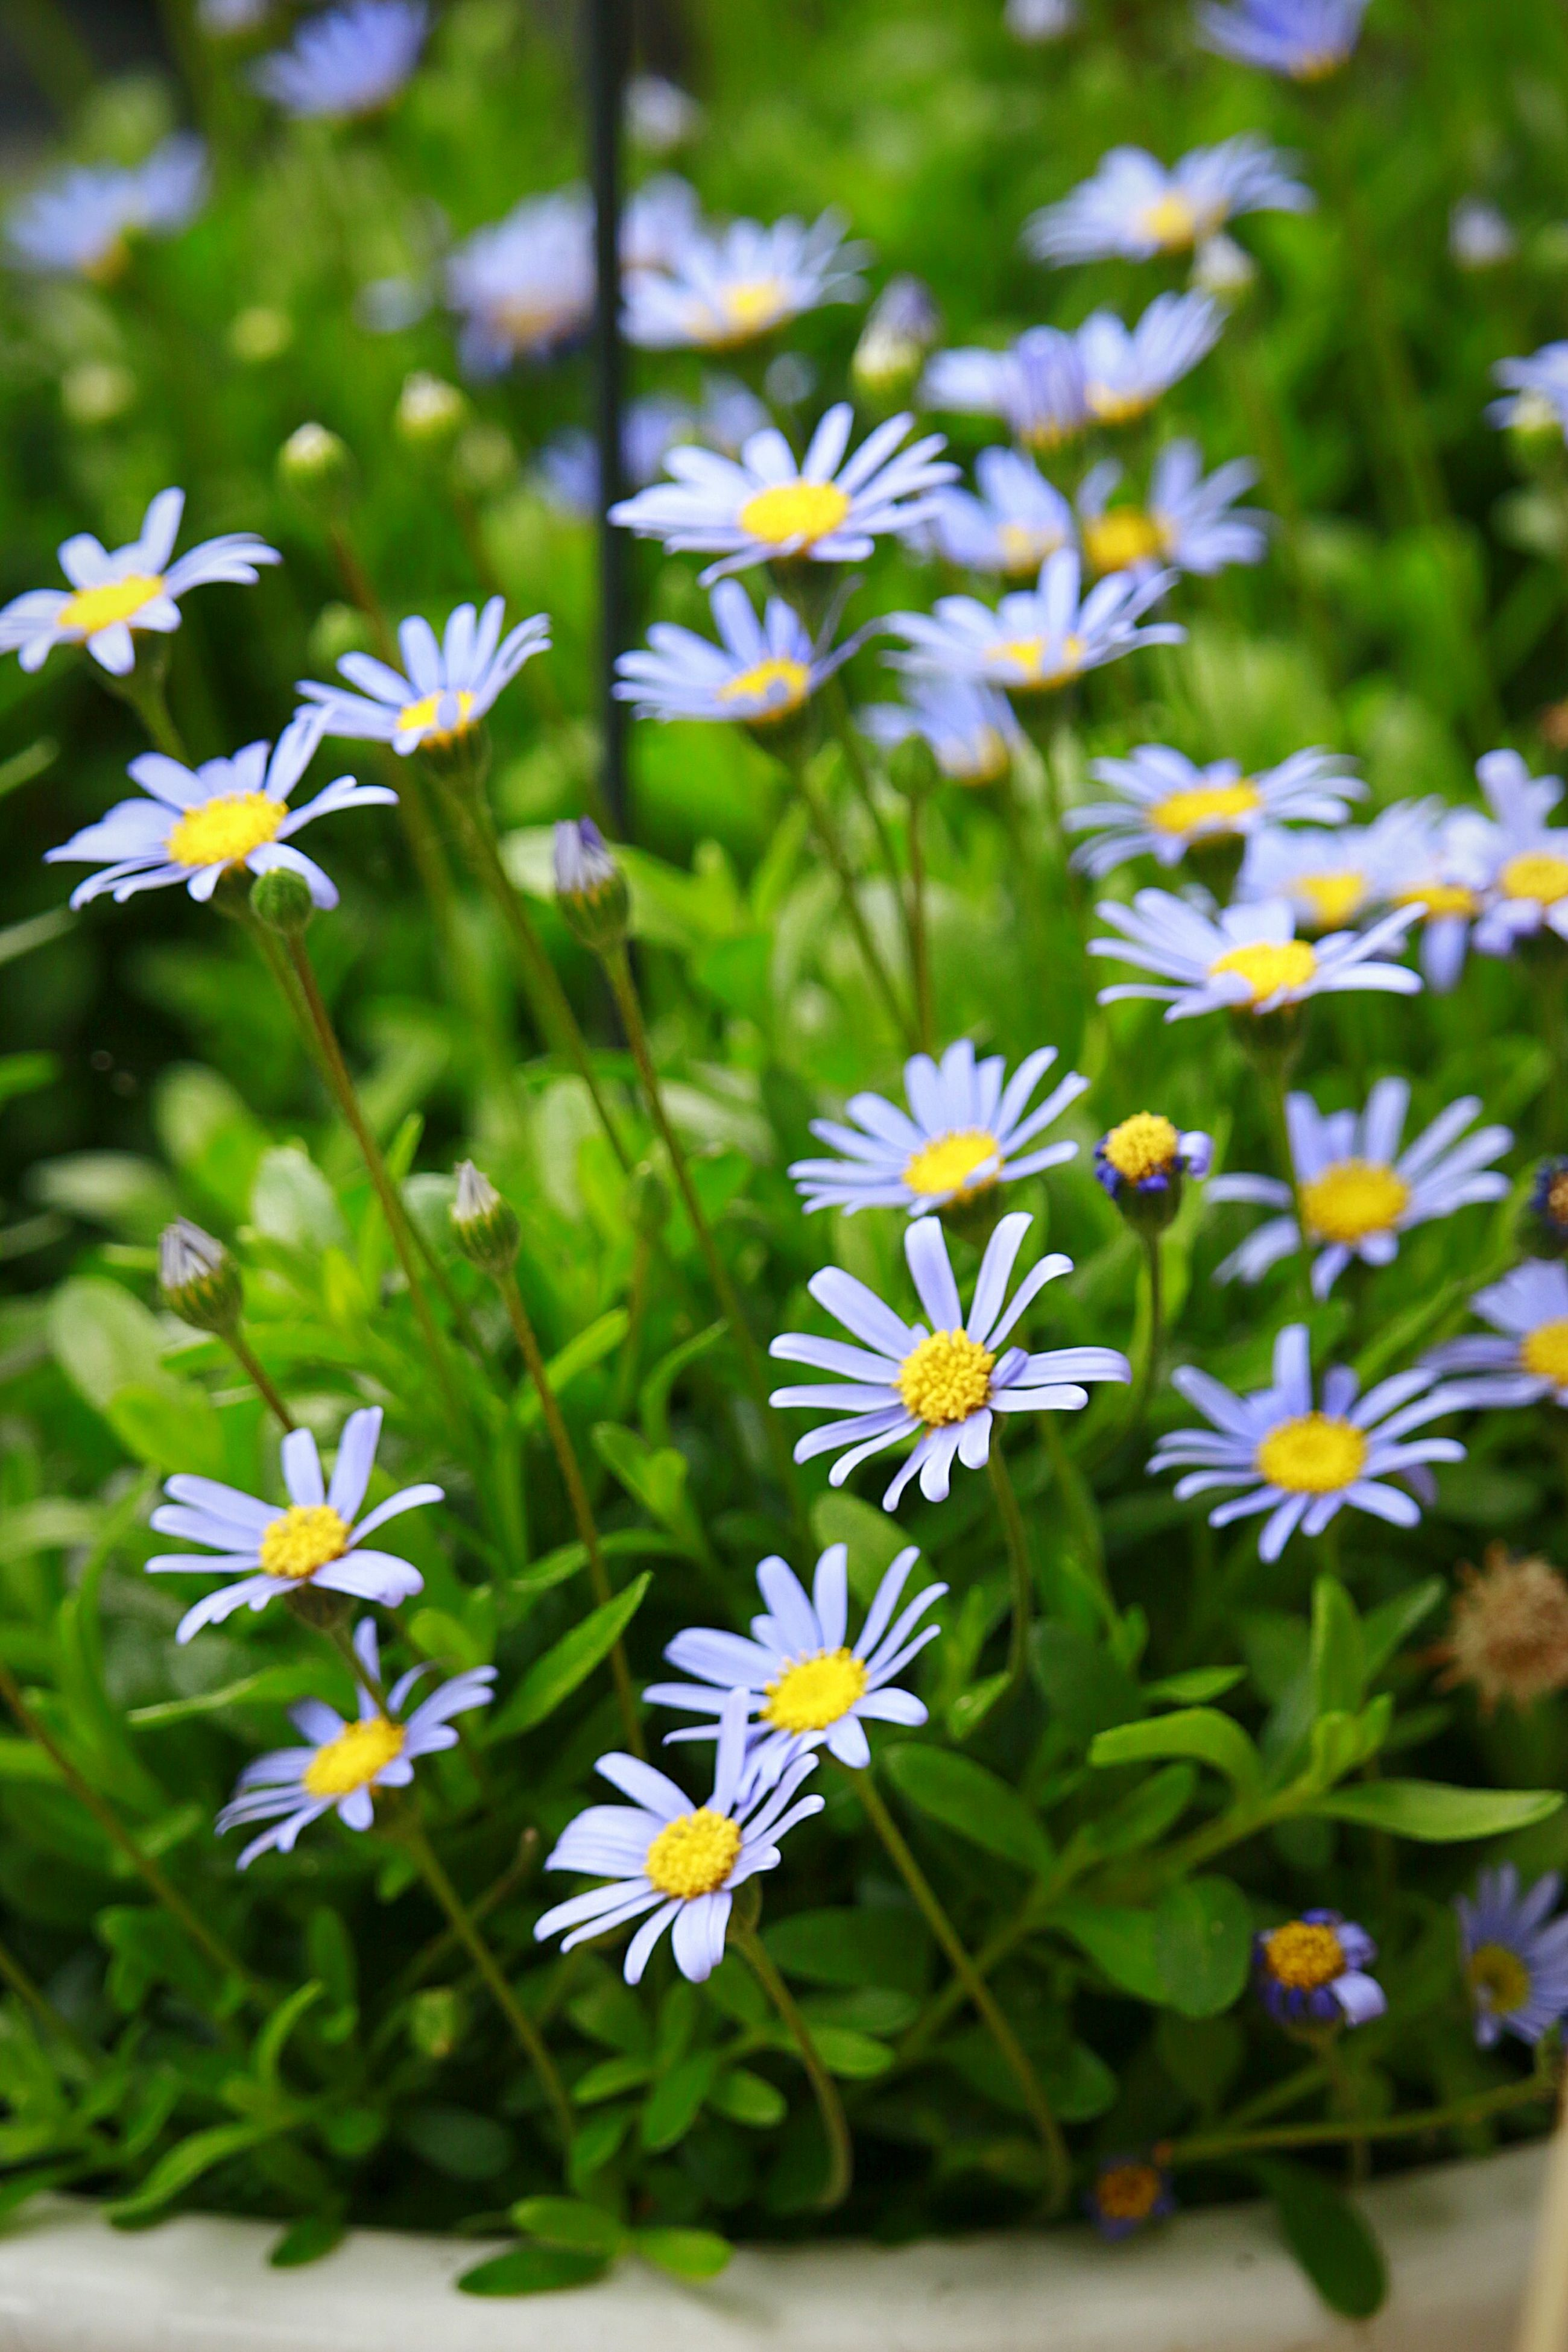 flower, freshness, fragility, petal, growth, plant, beauty in nature, blooming, white color, flower head, nature, leaf, focus on foreground, field, daisy, green color, stem, in bloom, high angle view, day